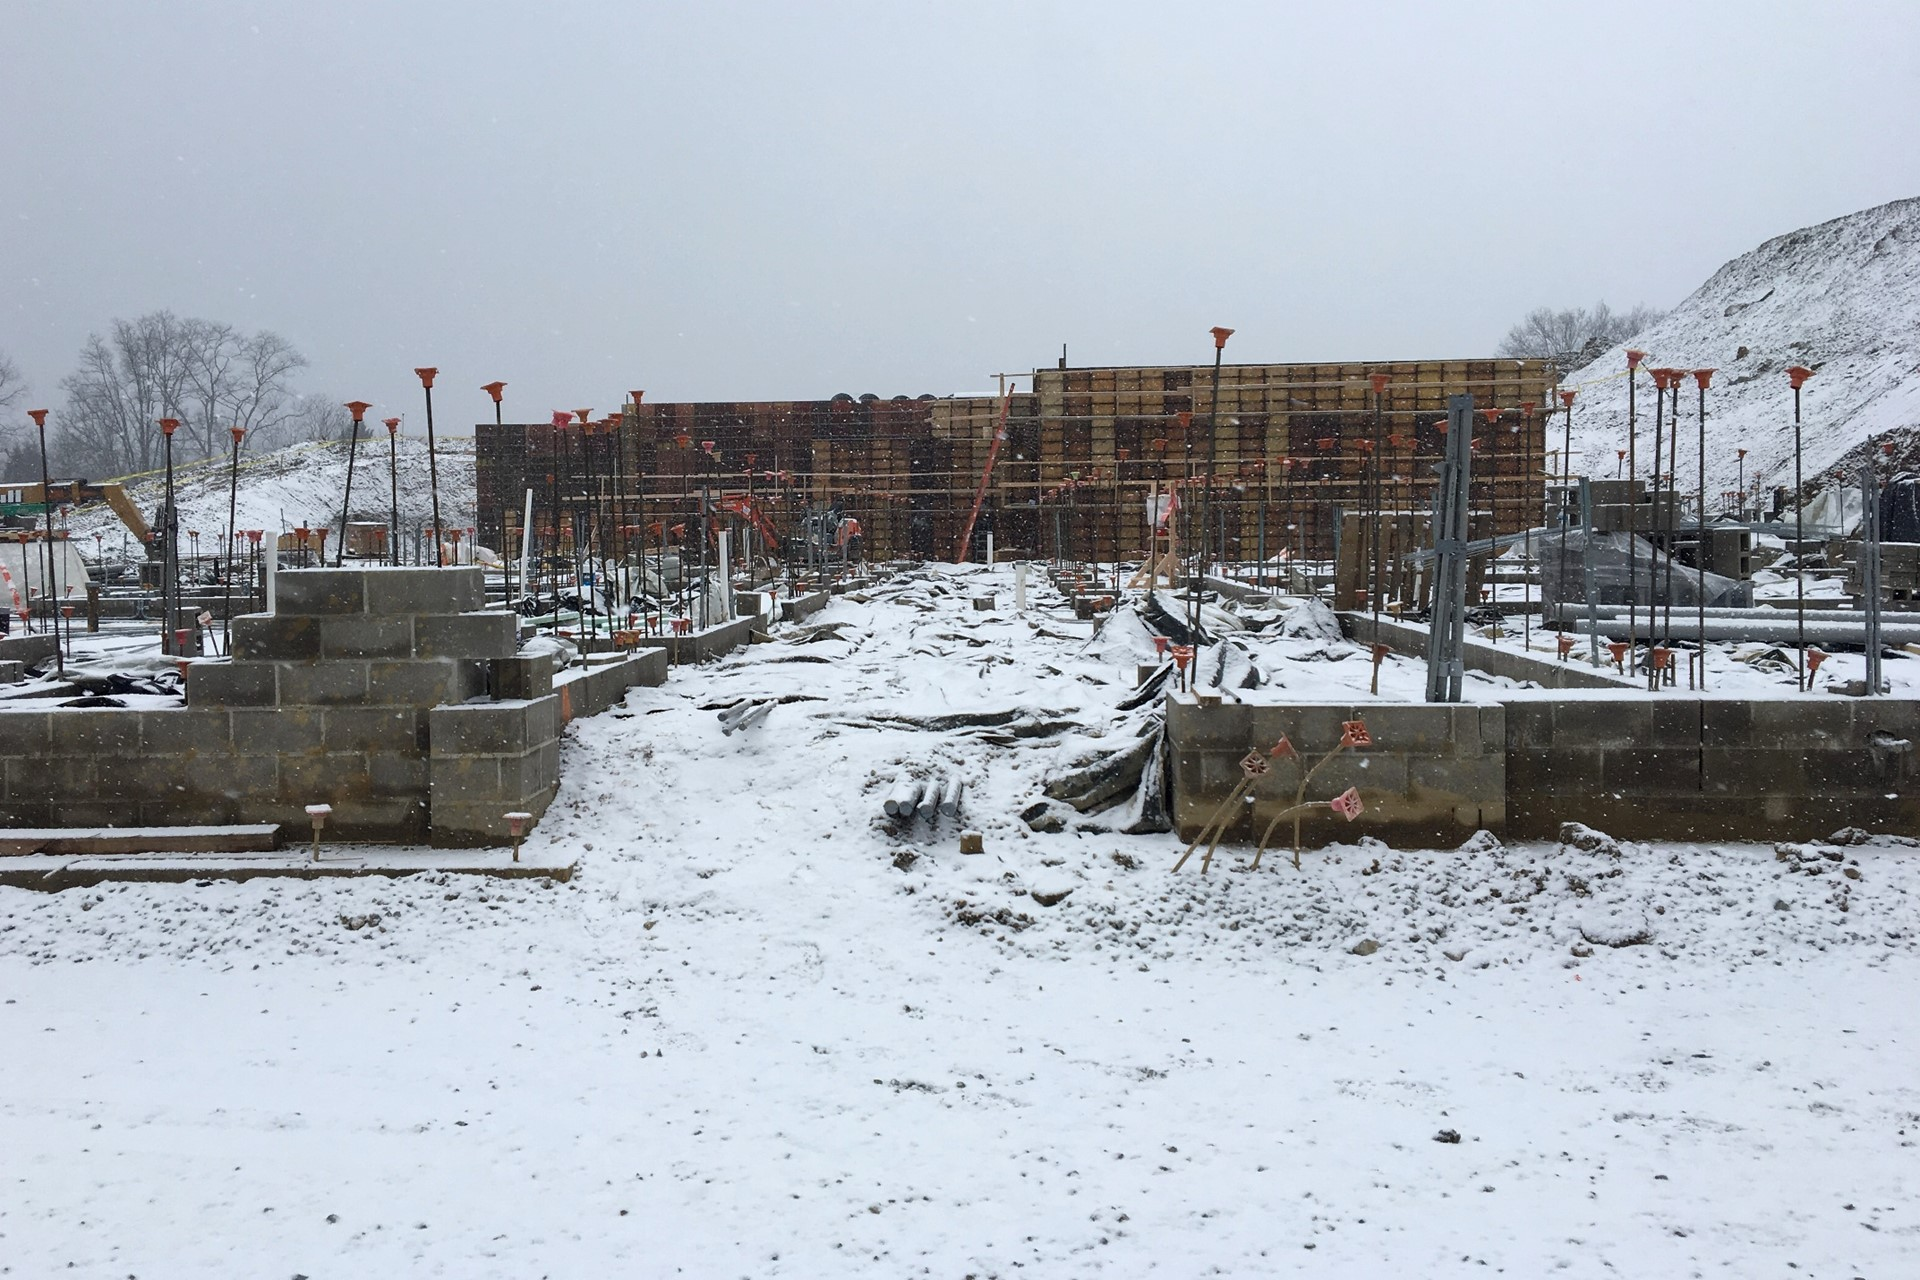 New school construction site: Cast-in-place wall panels